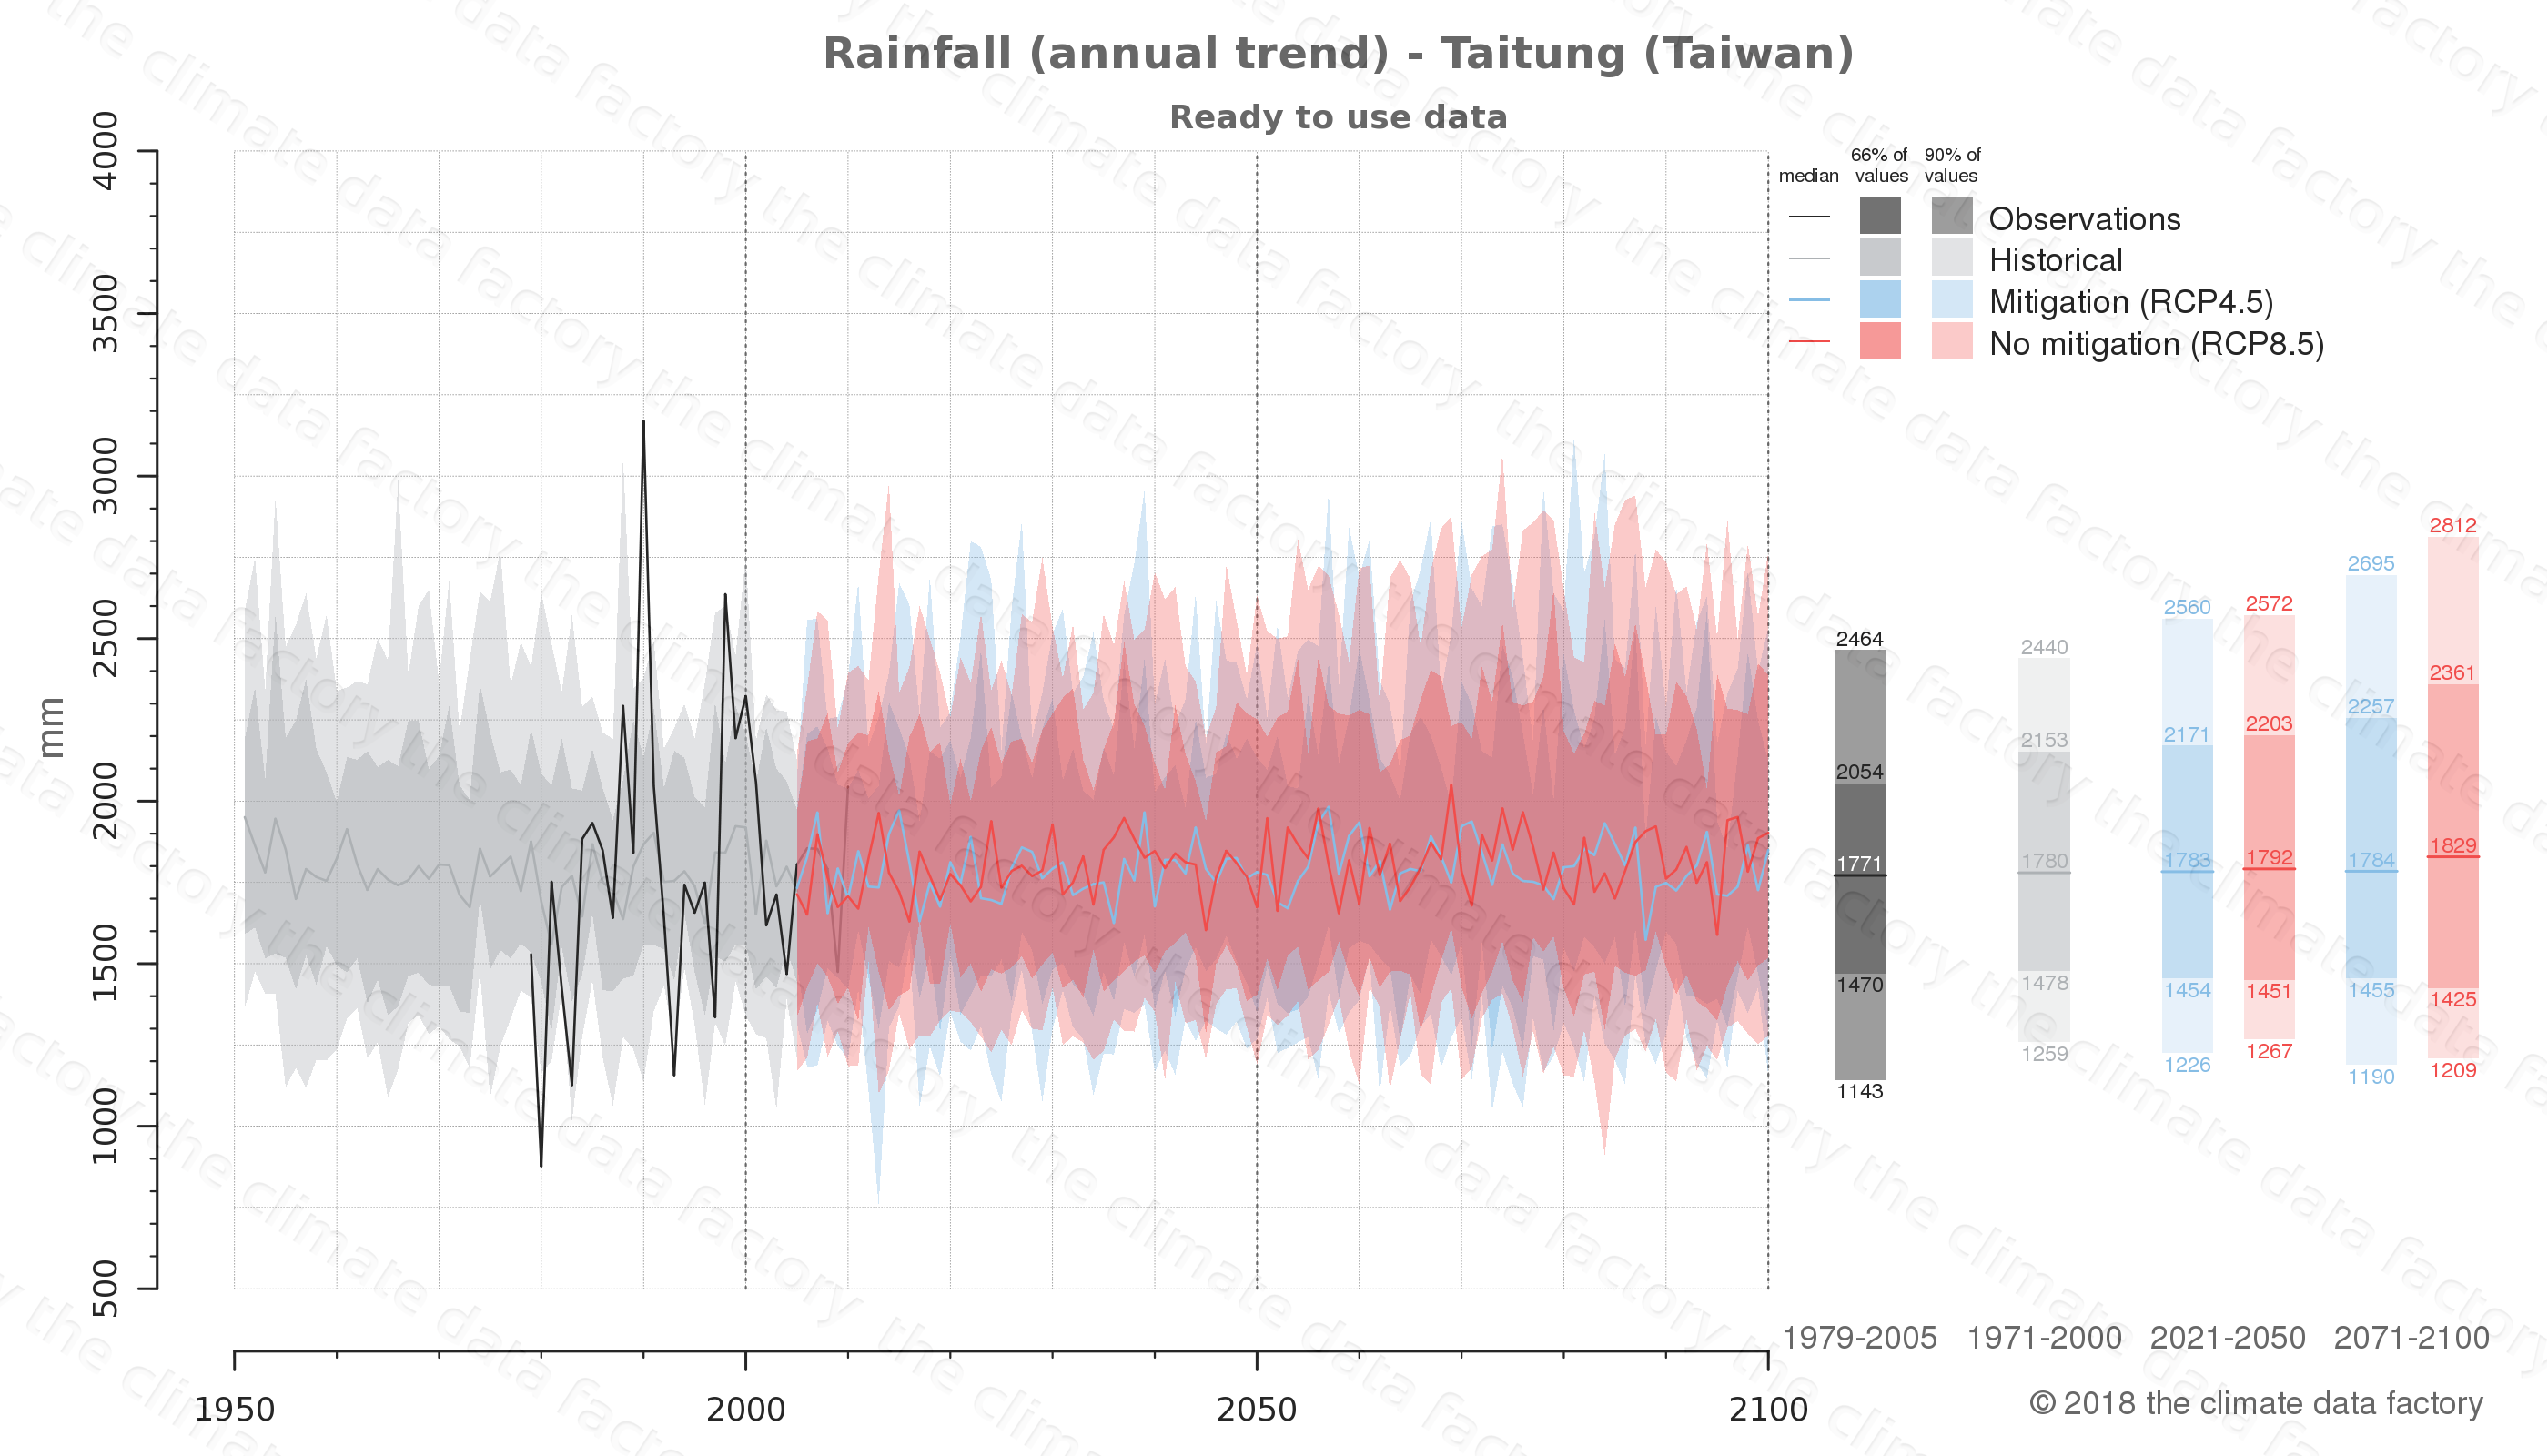 climate change data policy adaptation climate graph city data rainfall taitung taiwan